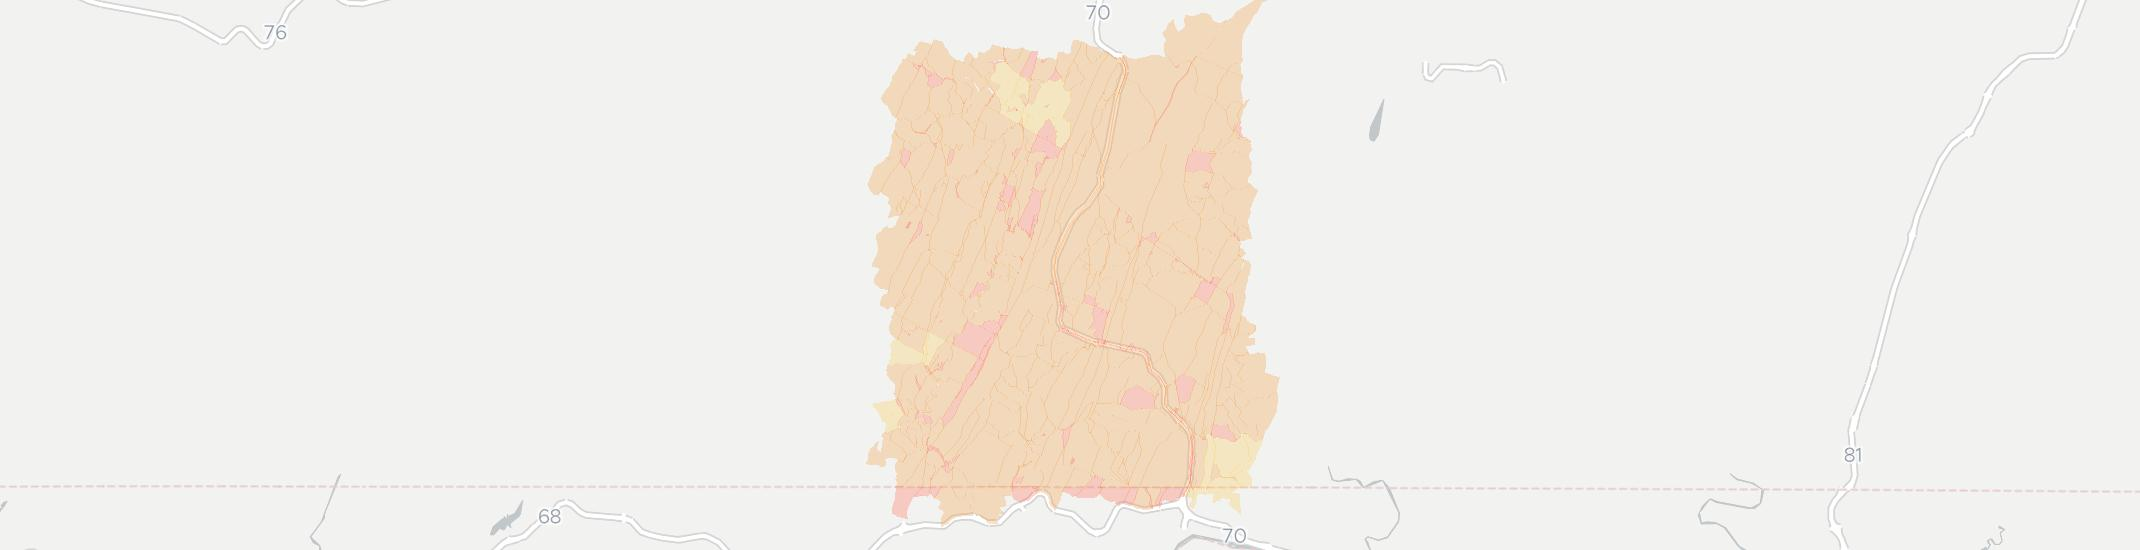 Warfordsburg Internet Competition Map. Click for interactive map.